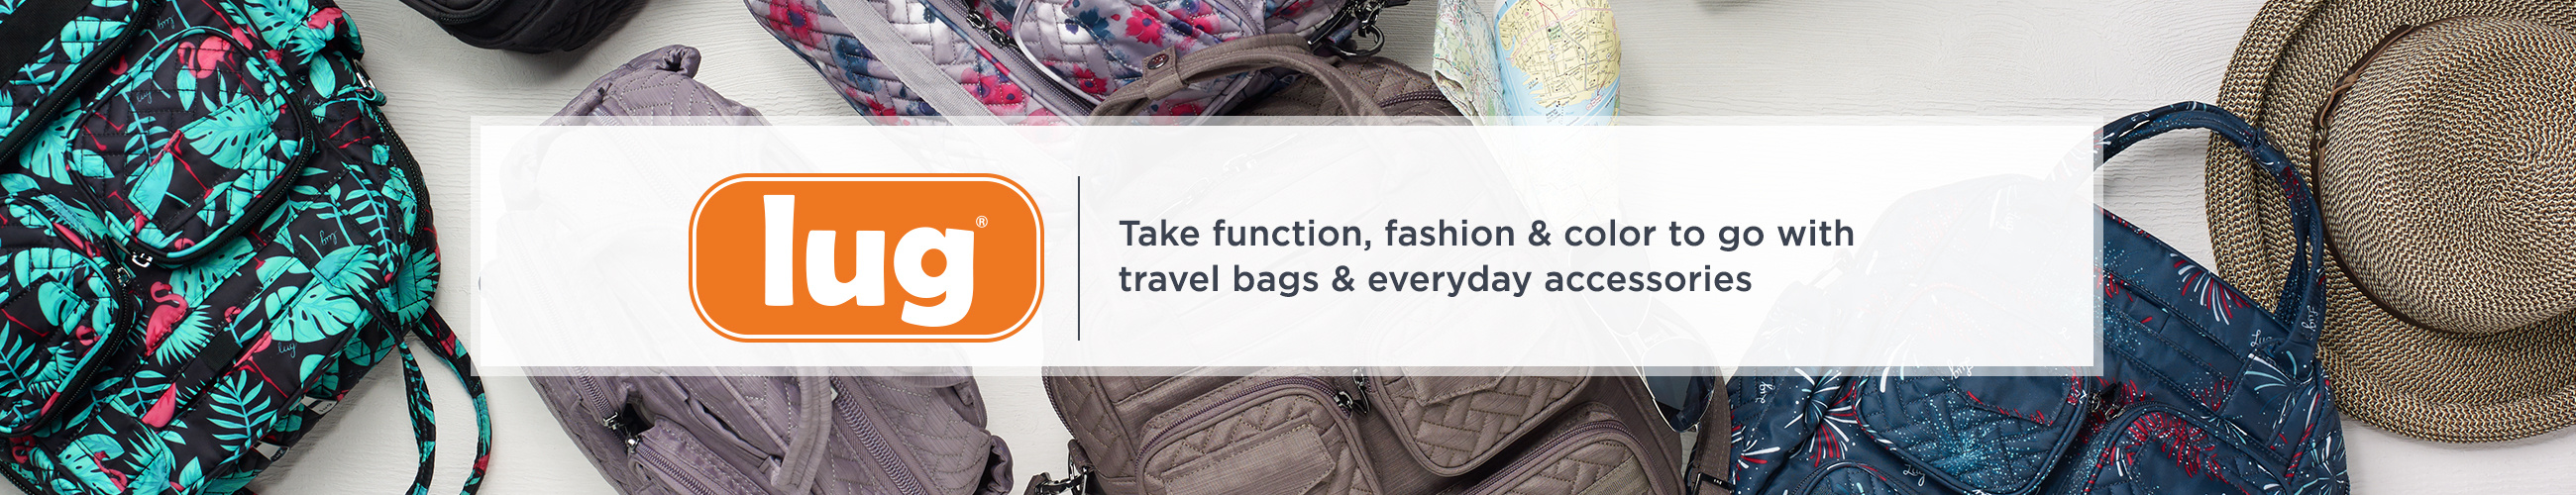 Lug. Take function, fashion & color to go with travel bags & everyday accessories